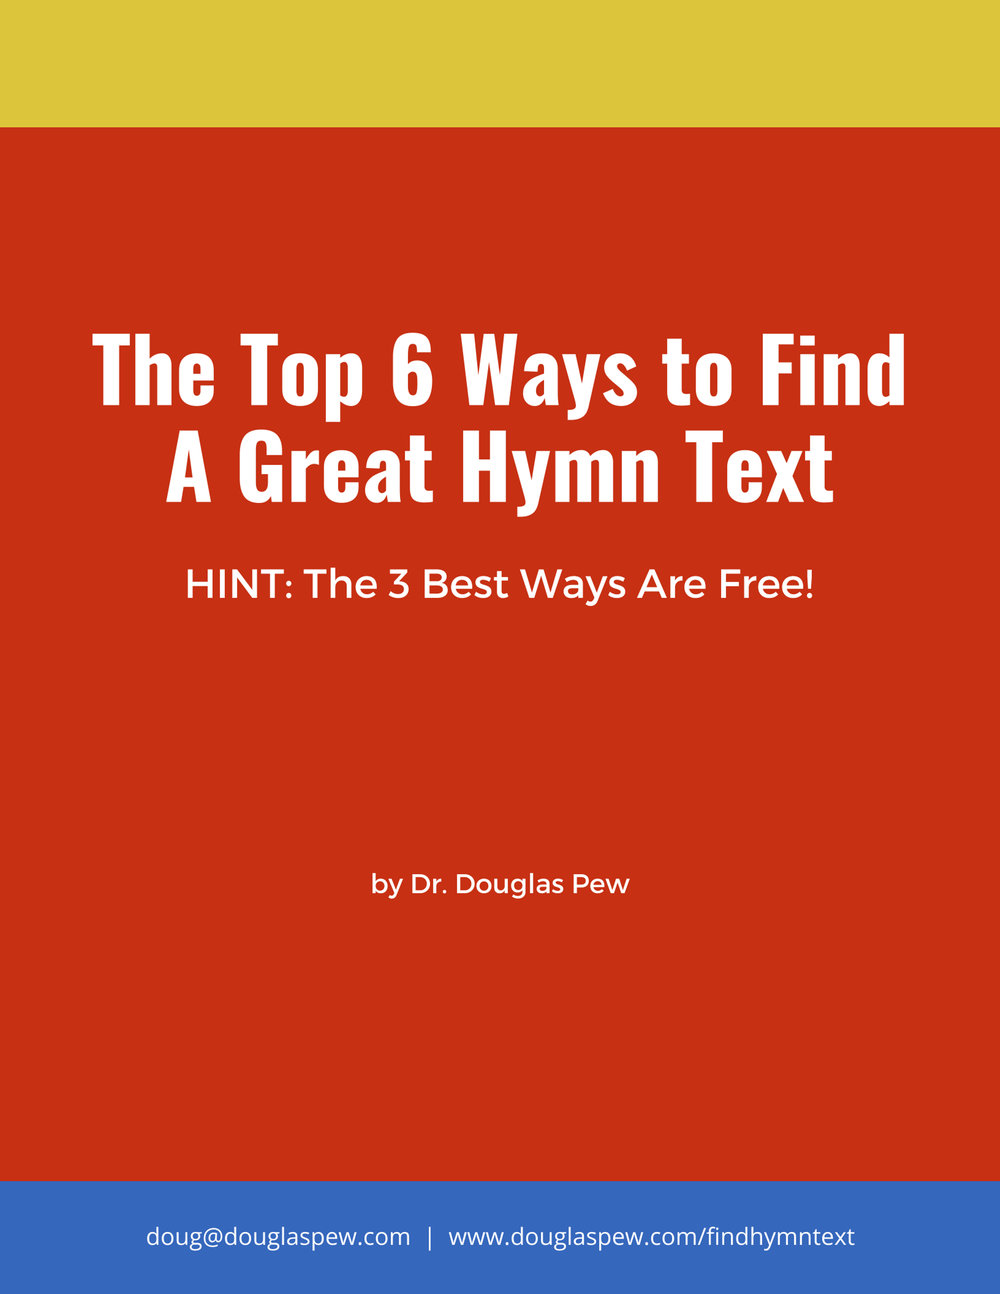 Find Hymn Text Report Cover (1).jpg